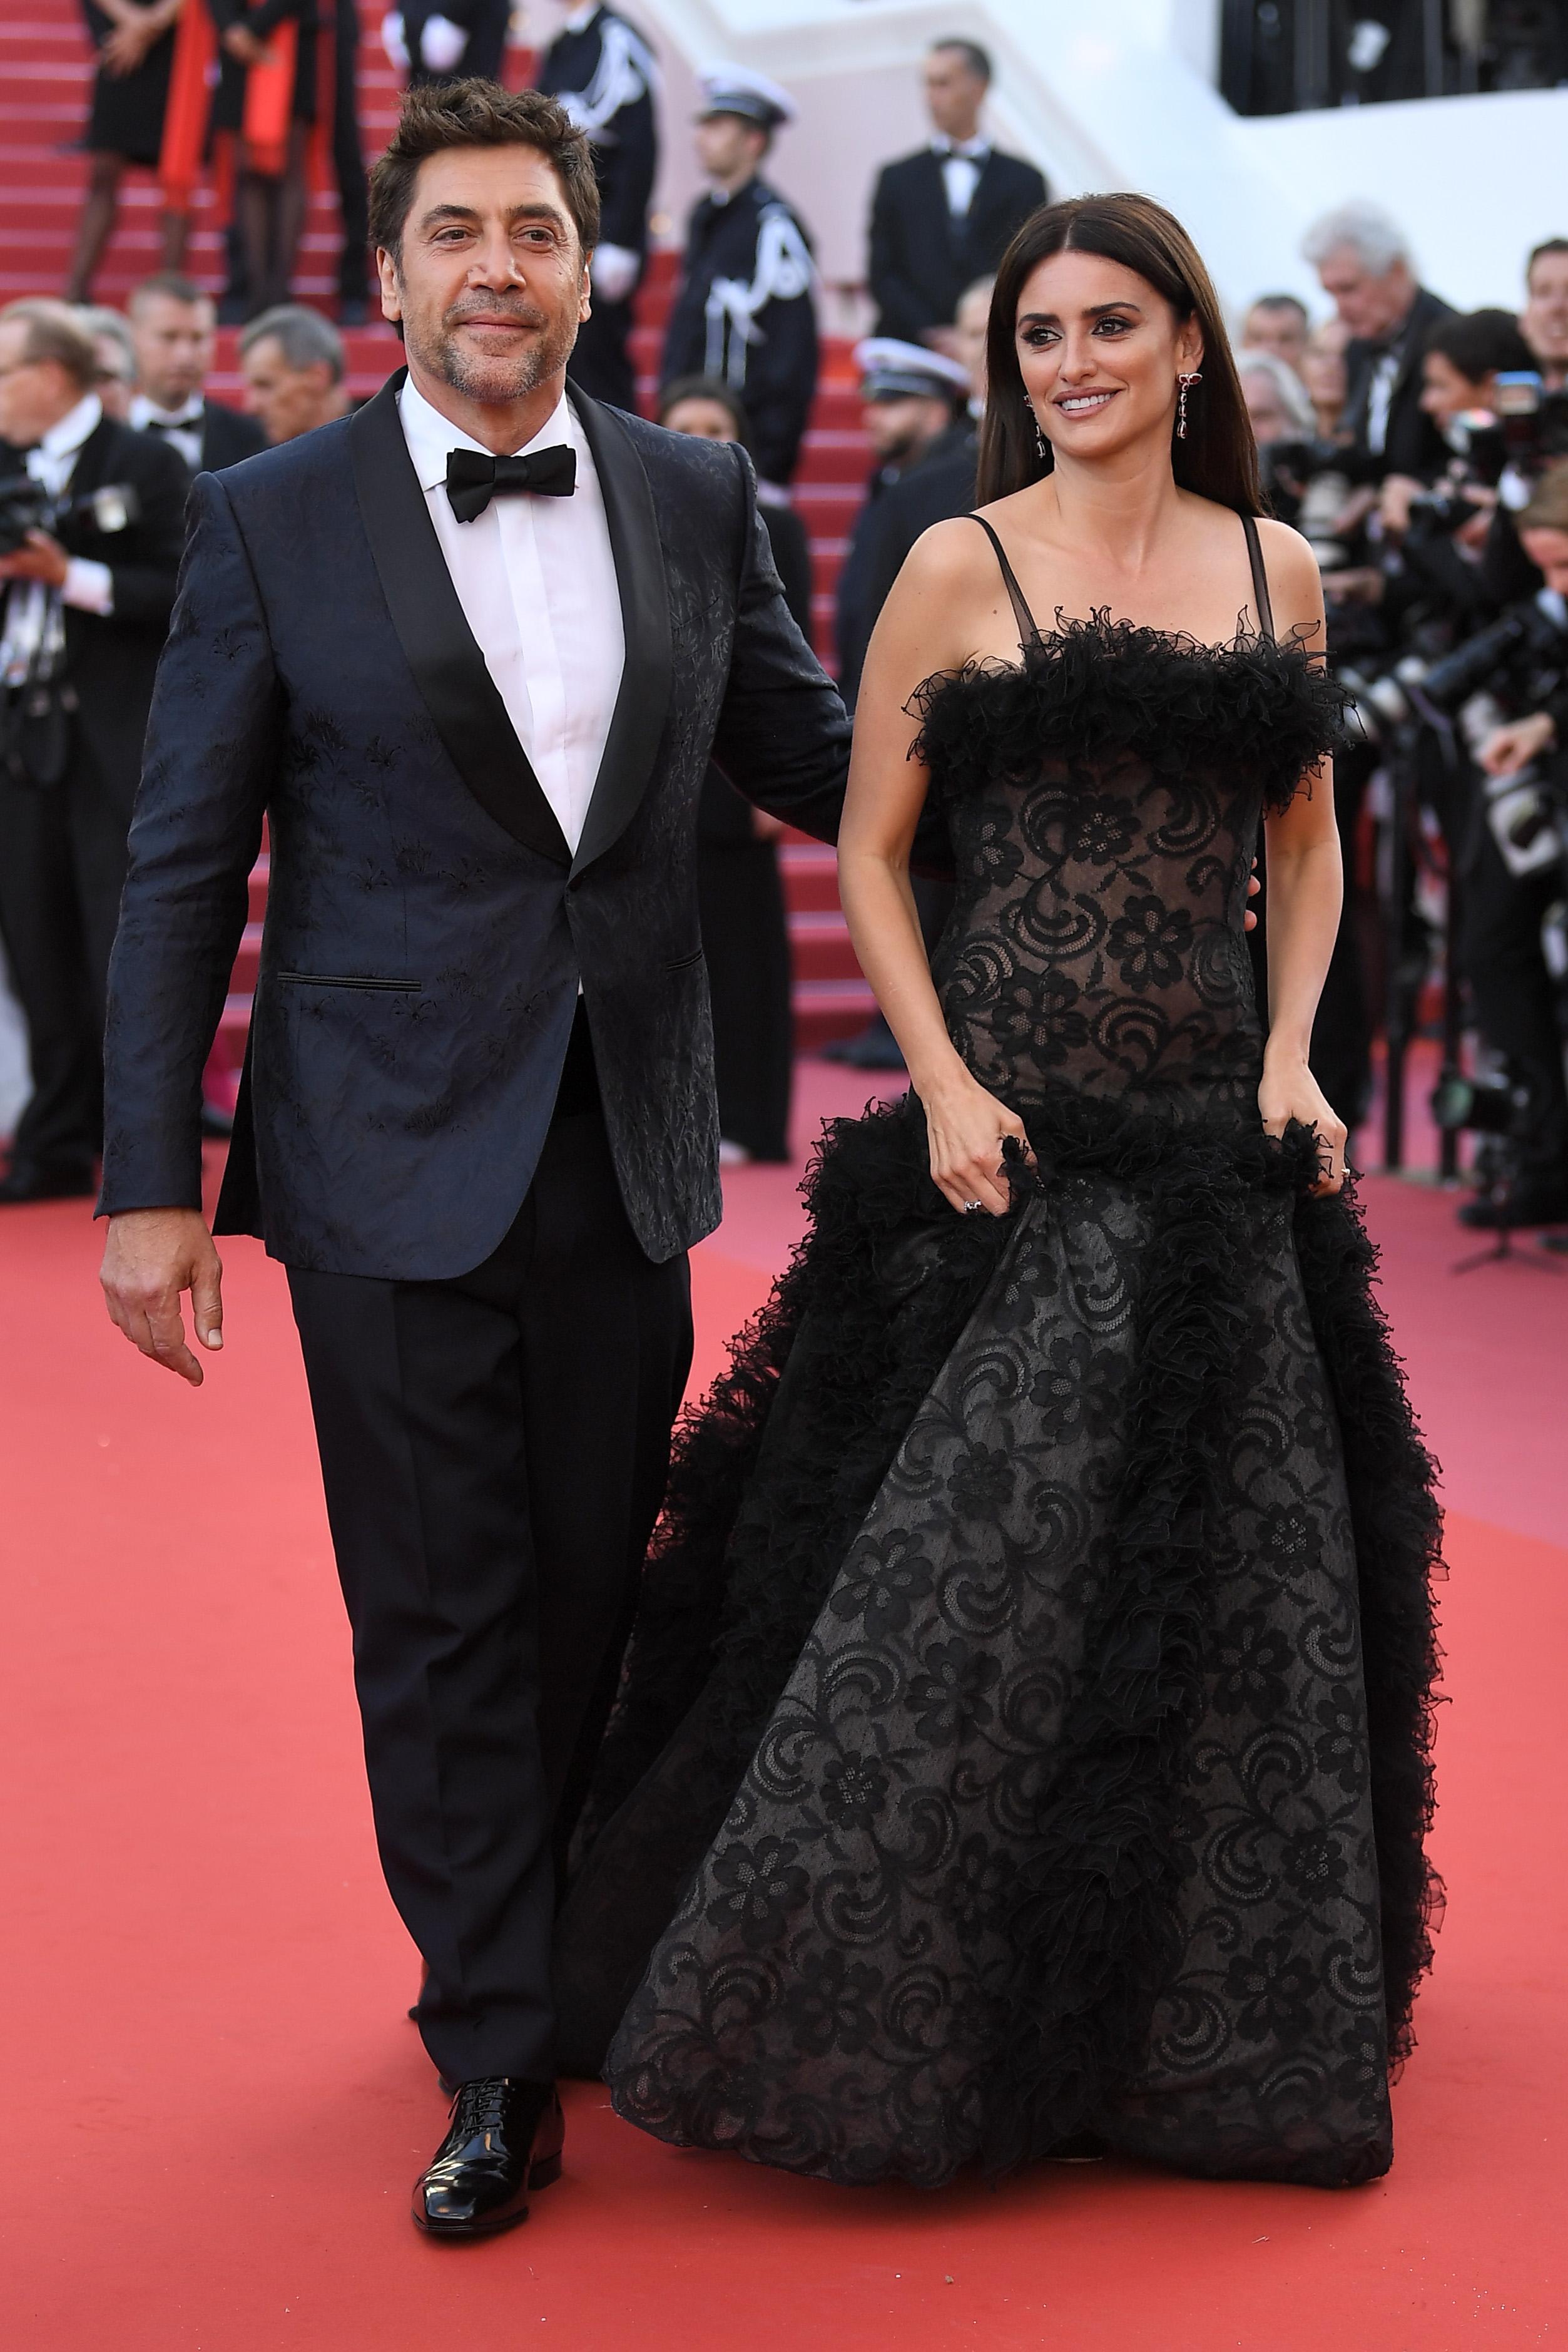 Javier Bardem and Penelope Cruz'Everybody Knows' premiere and opening ceremony, 71st Cannes Film Festival, France - 08 May 2018